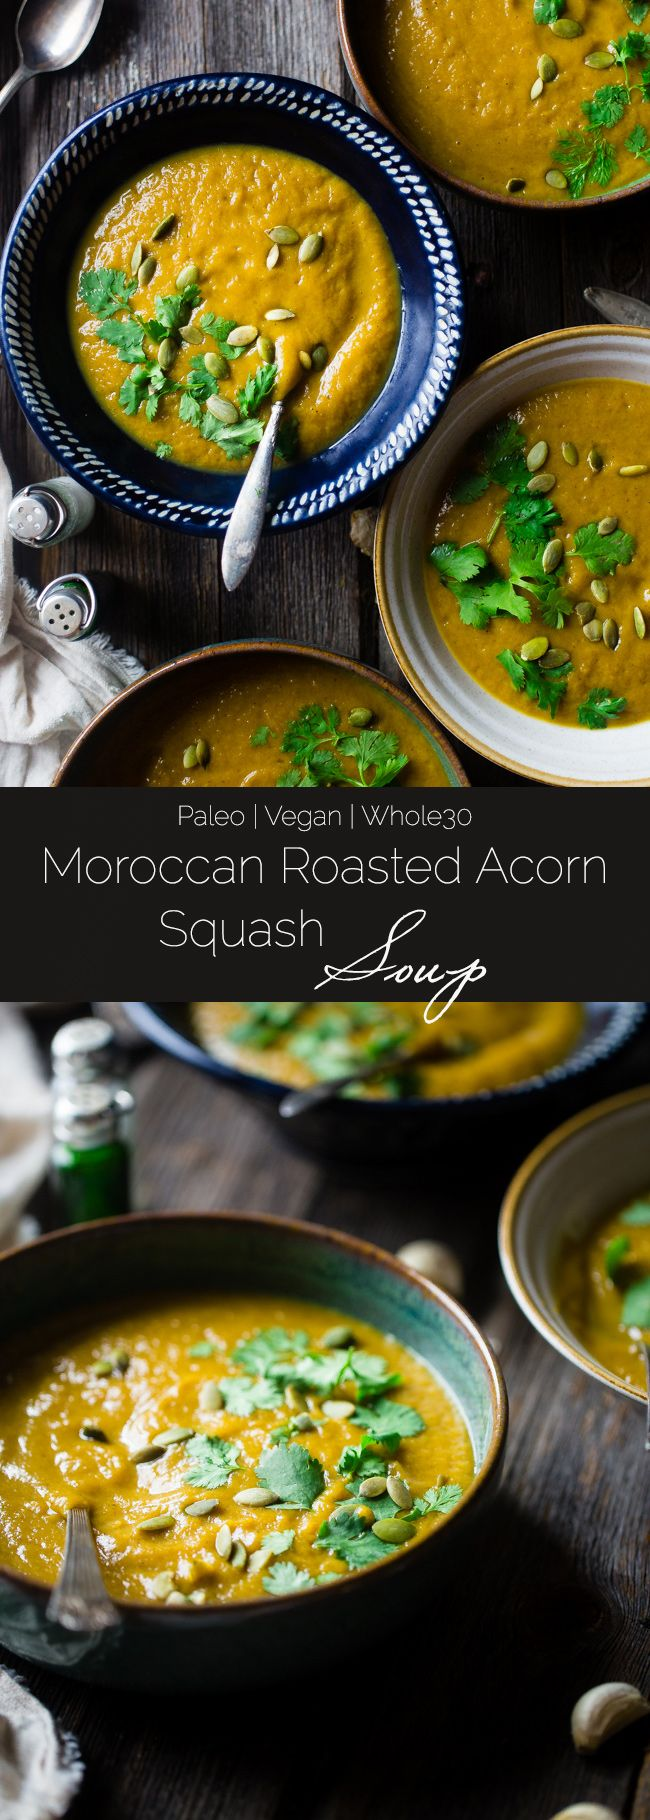 Vegan Moroccan Roasted Acorn Squash Soup - This easy soup is bursting with spices, and is sweetened with dates! It's a healthy, whole30 compliant, paleo meal for only 200 calories! | Foodfaithfitness.com | @FoodFaithFit